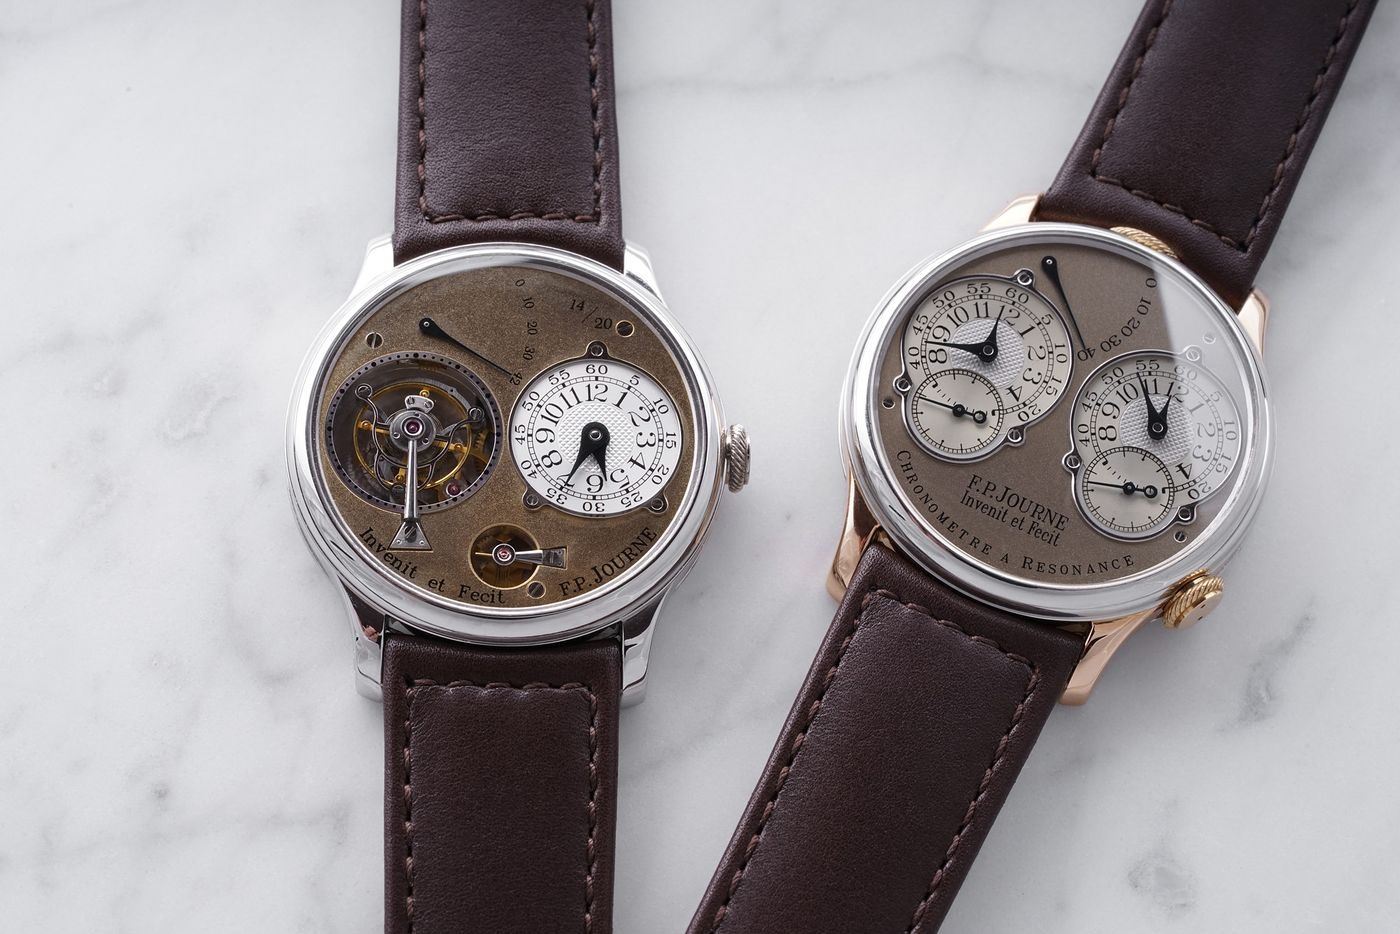 Arthur Touchot meets Lorenz Bäumer, one of the consignors of The Geneva Watch Auction: XI, to learn about two fresh-to-market F.P Journe wristwatches made before the watchmaker's rise to stardom.